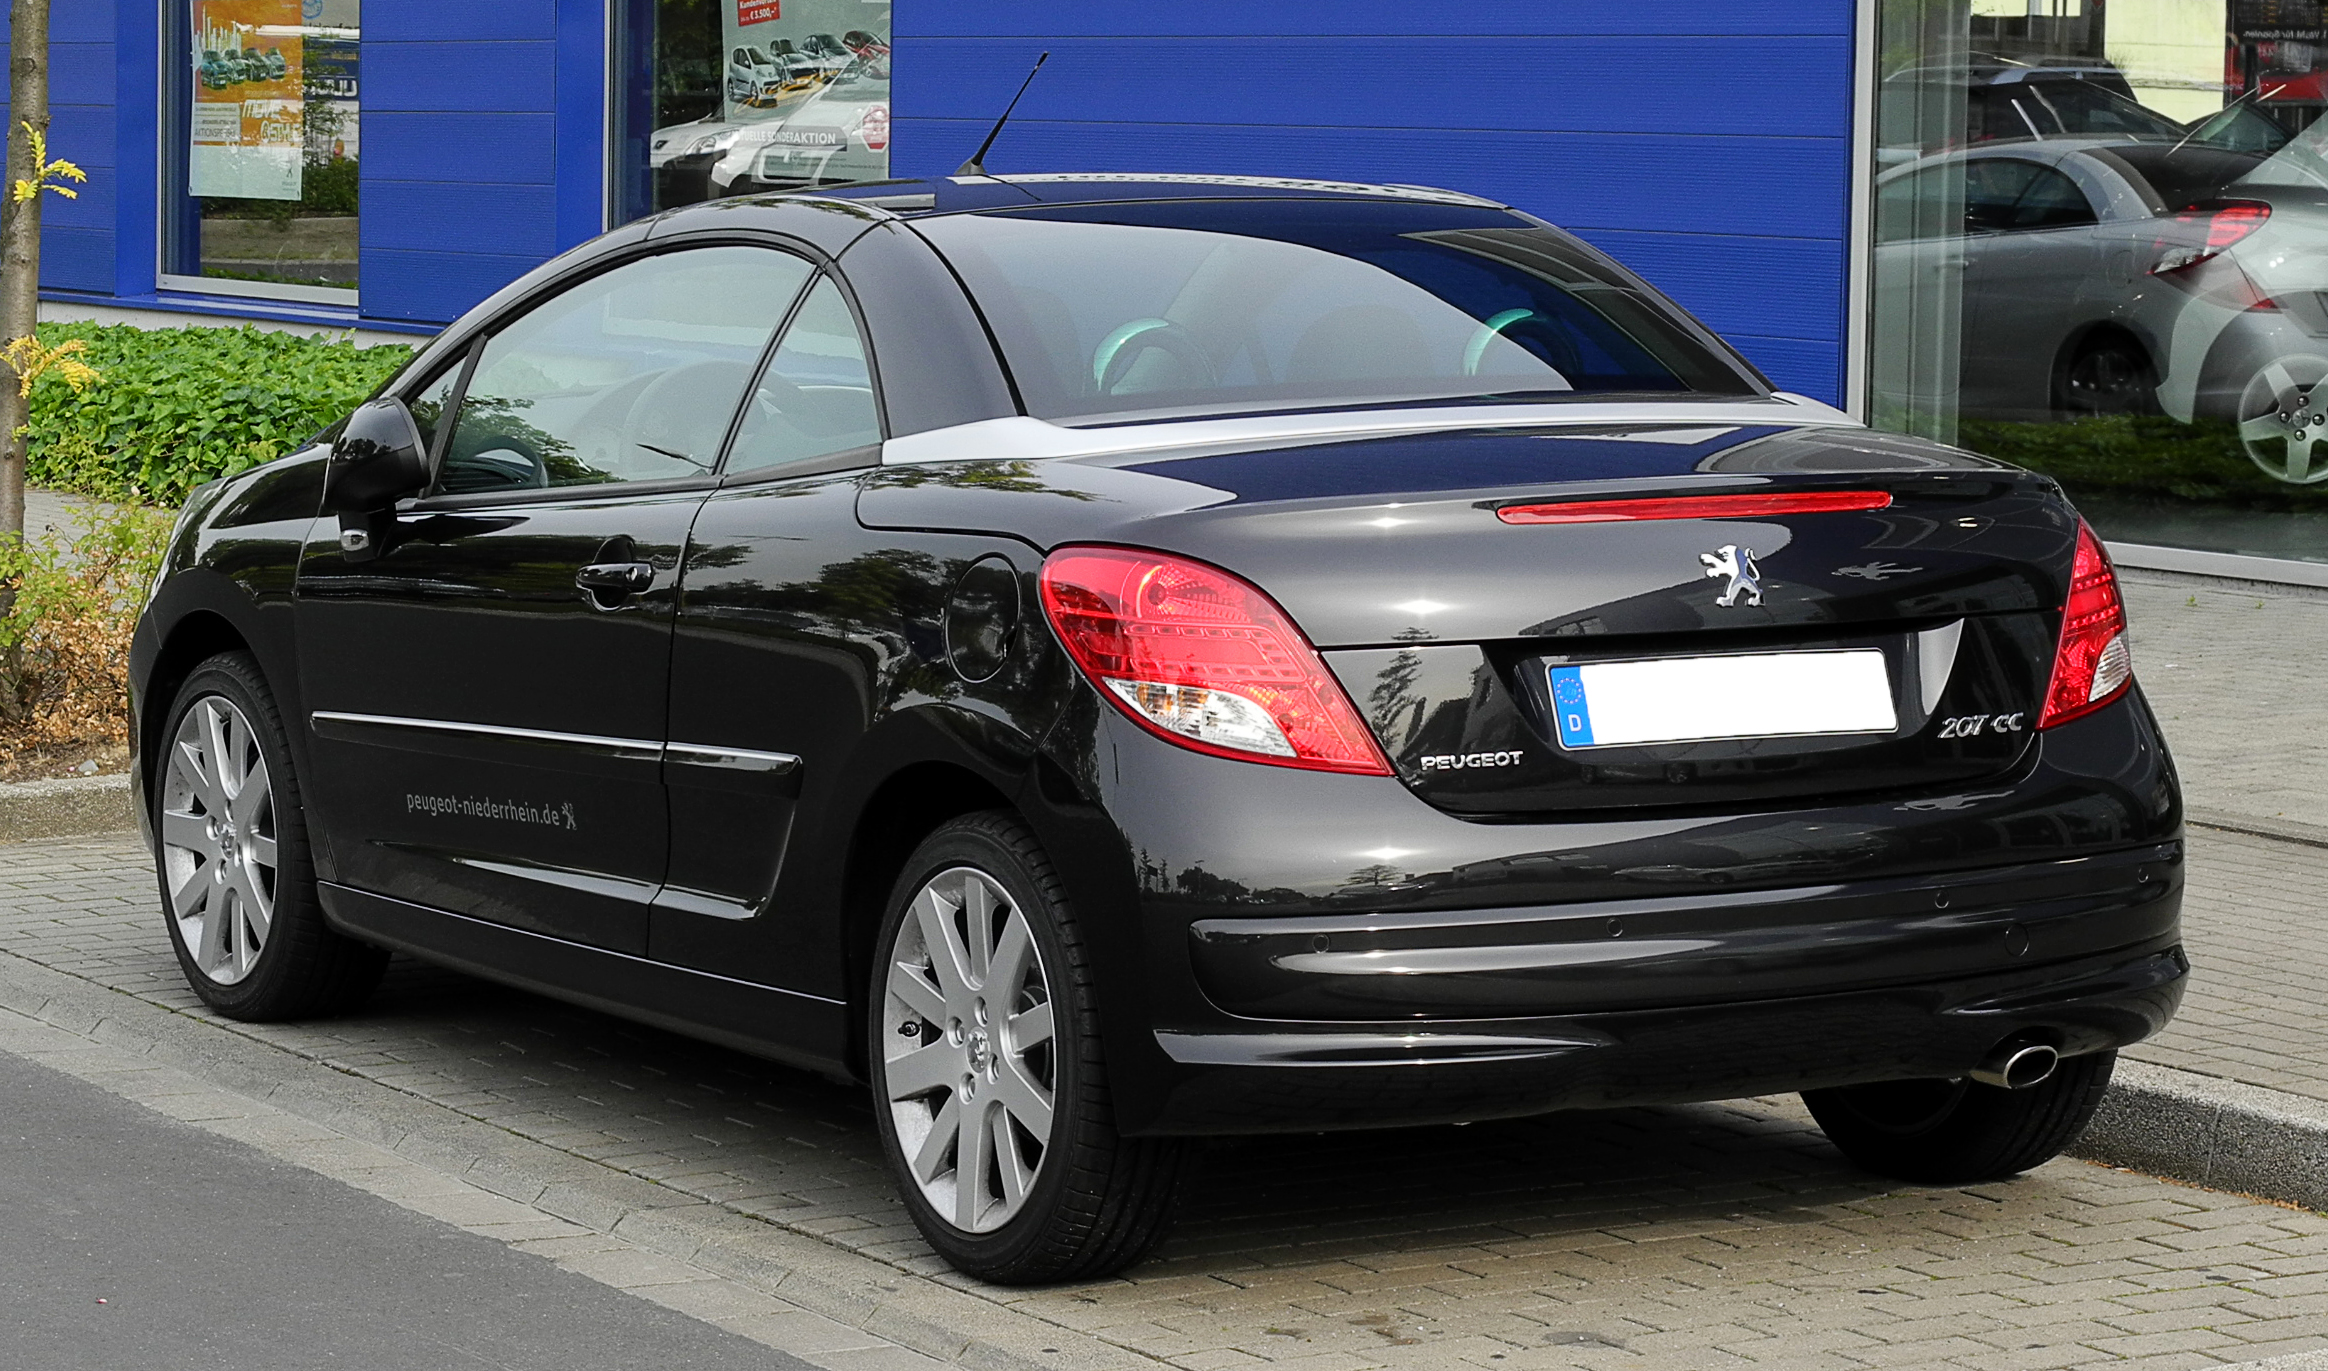 file peugeot 207 cc facelift heckansicht 12 juni 2011 d wikimedia commons. Black Bedroom Furniture Sets. Home Design Ideas